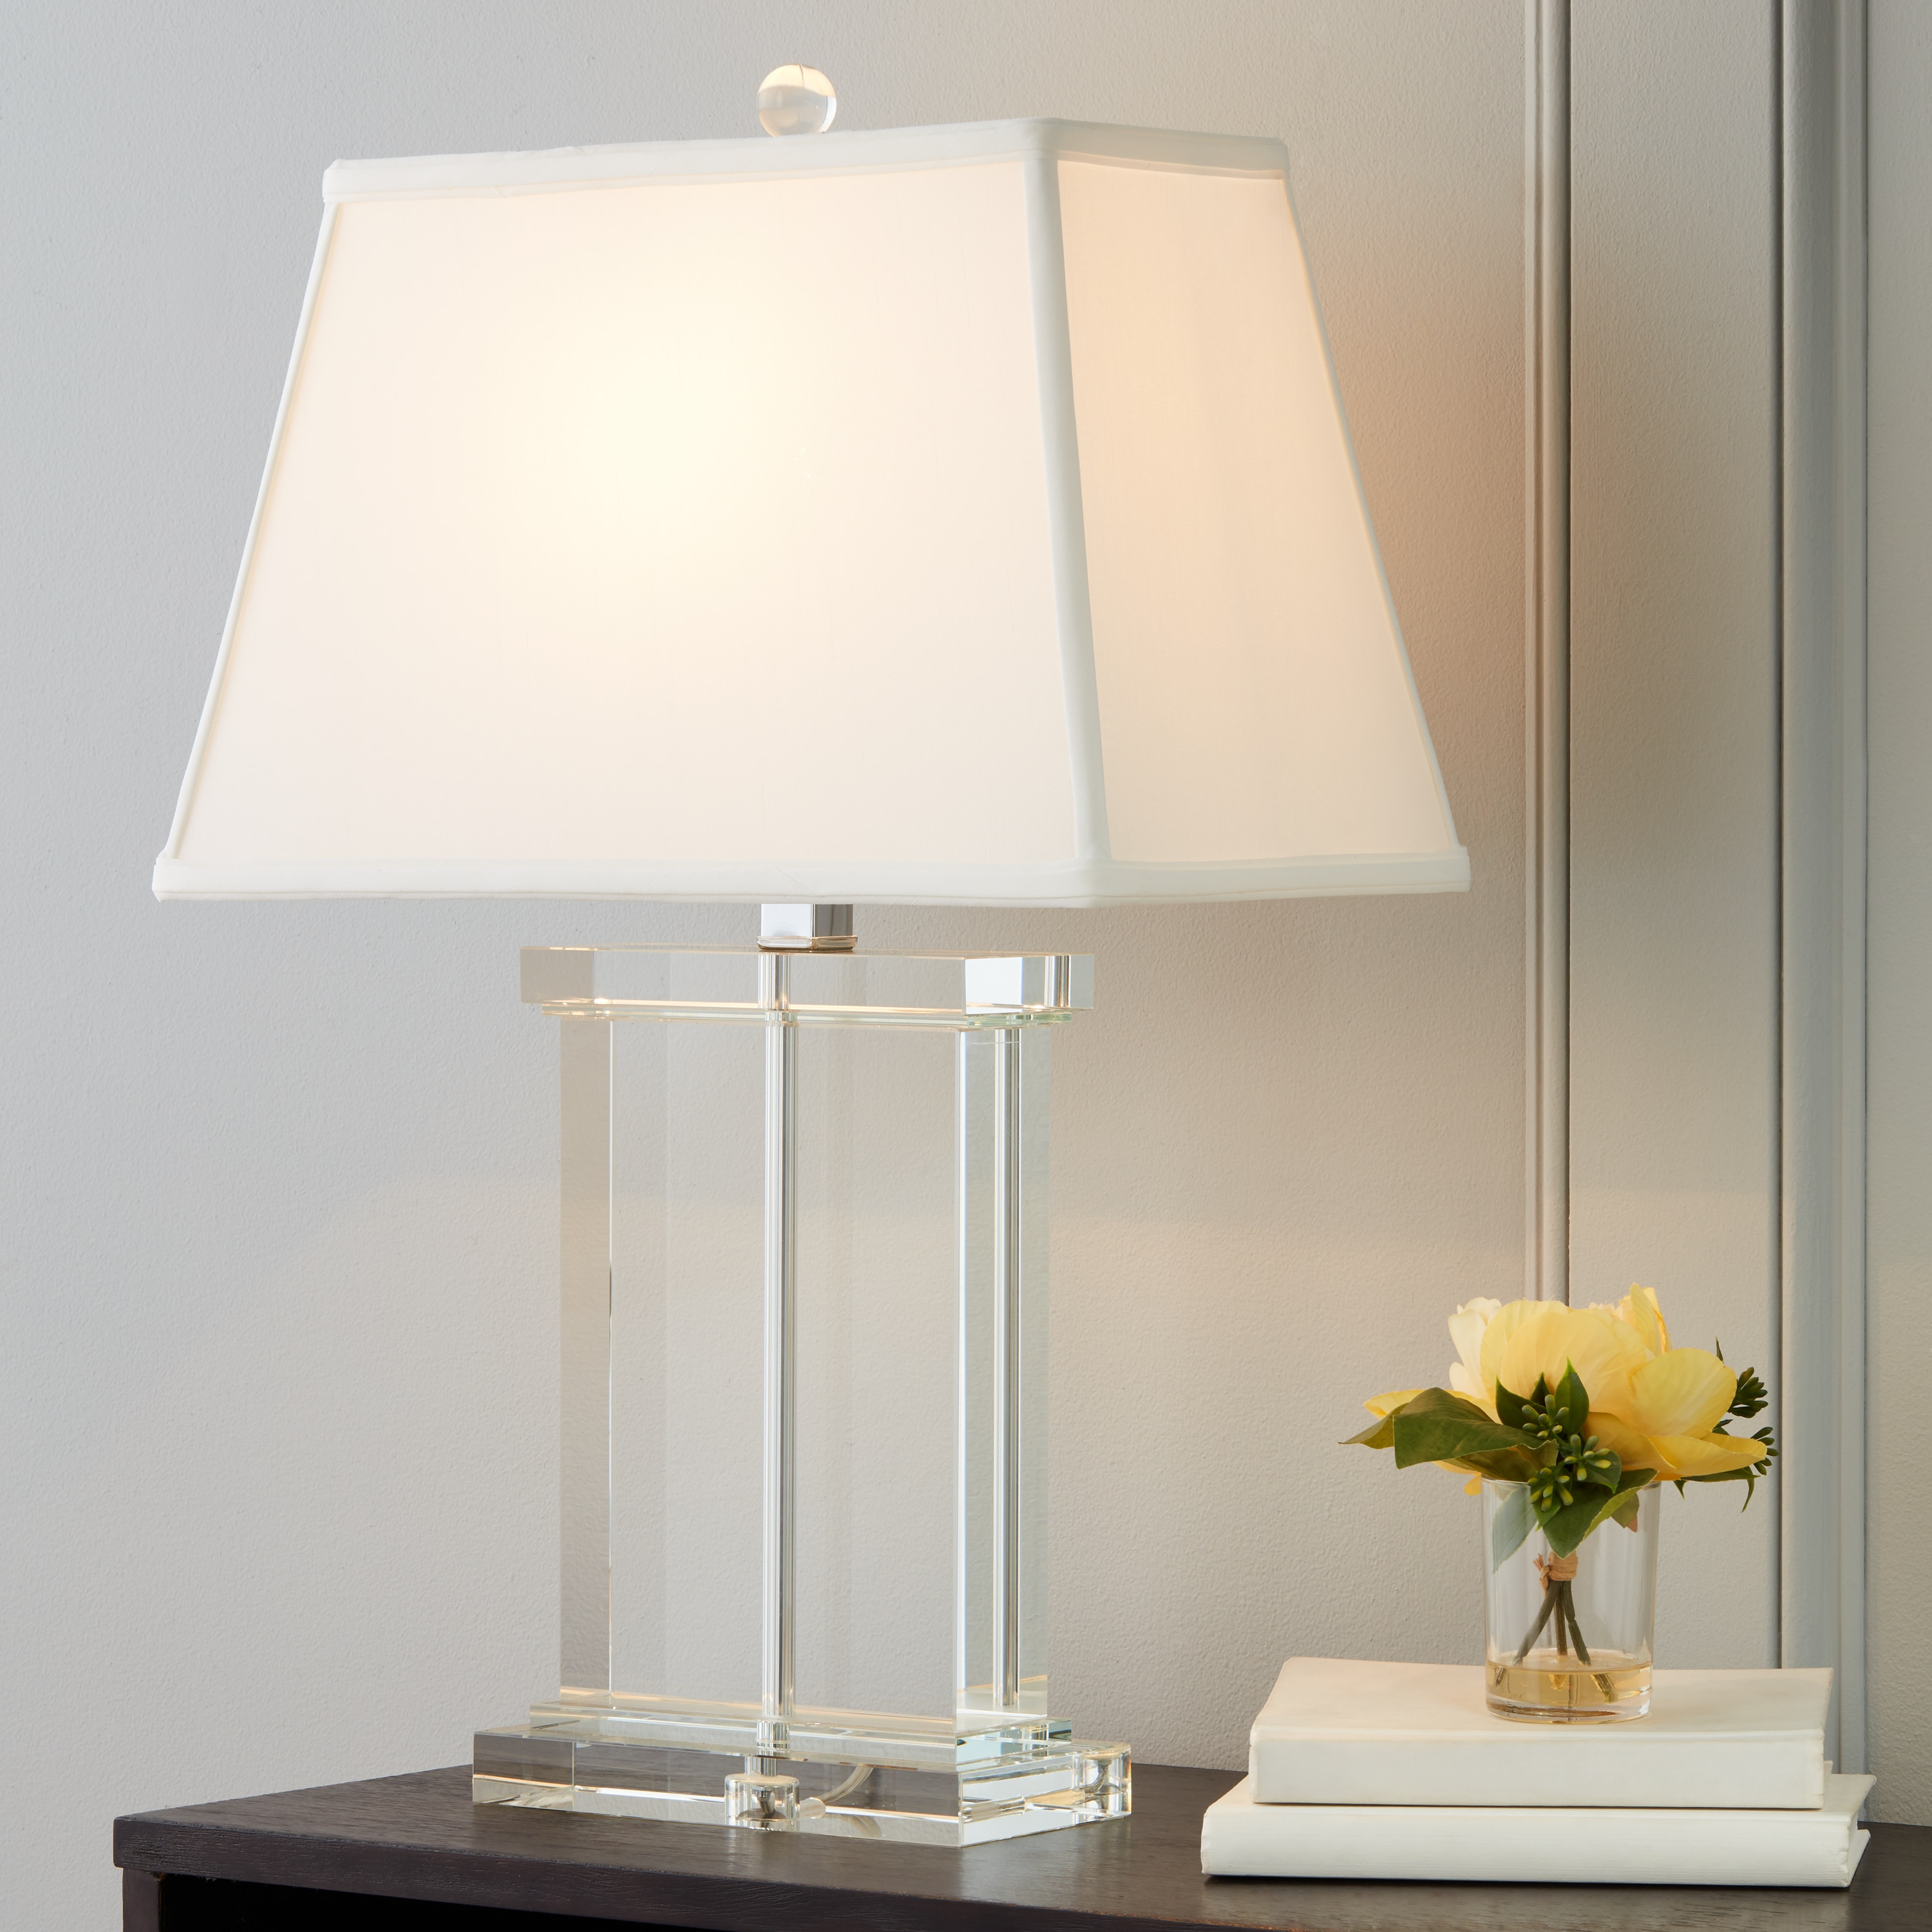 Crystal rectangle column table lamp free shipping today crystal rectangle column table lamp free shipping today overstock 11276432 mozeypictures Choice Image